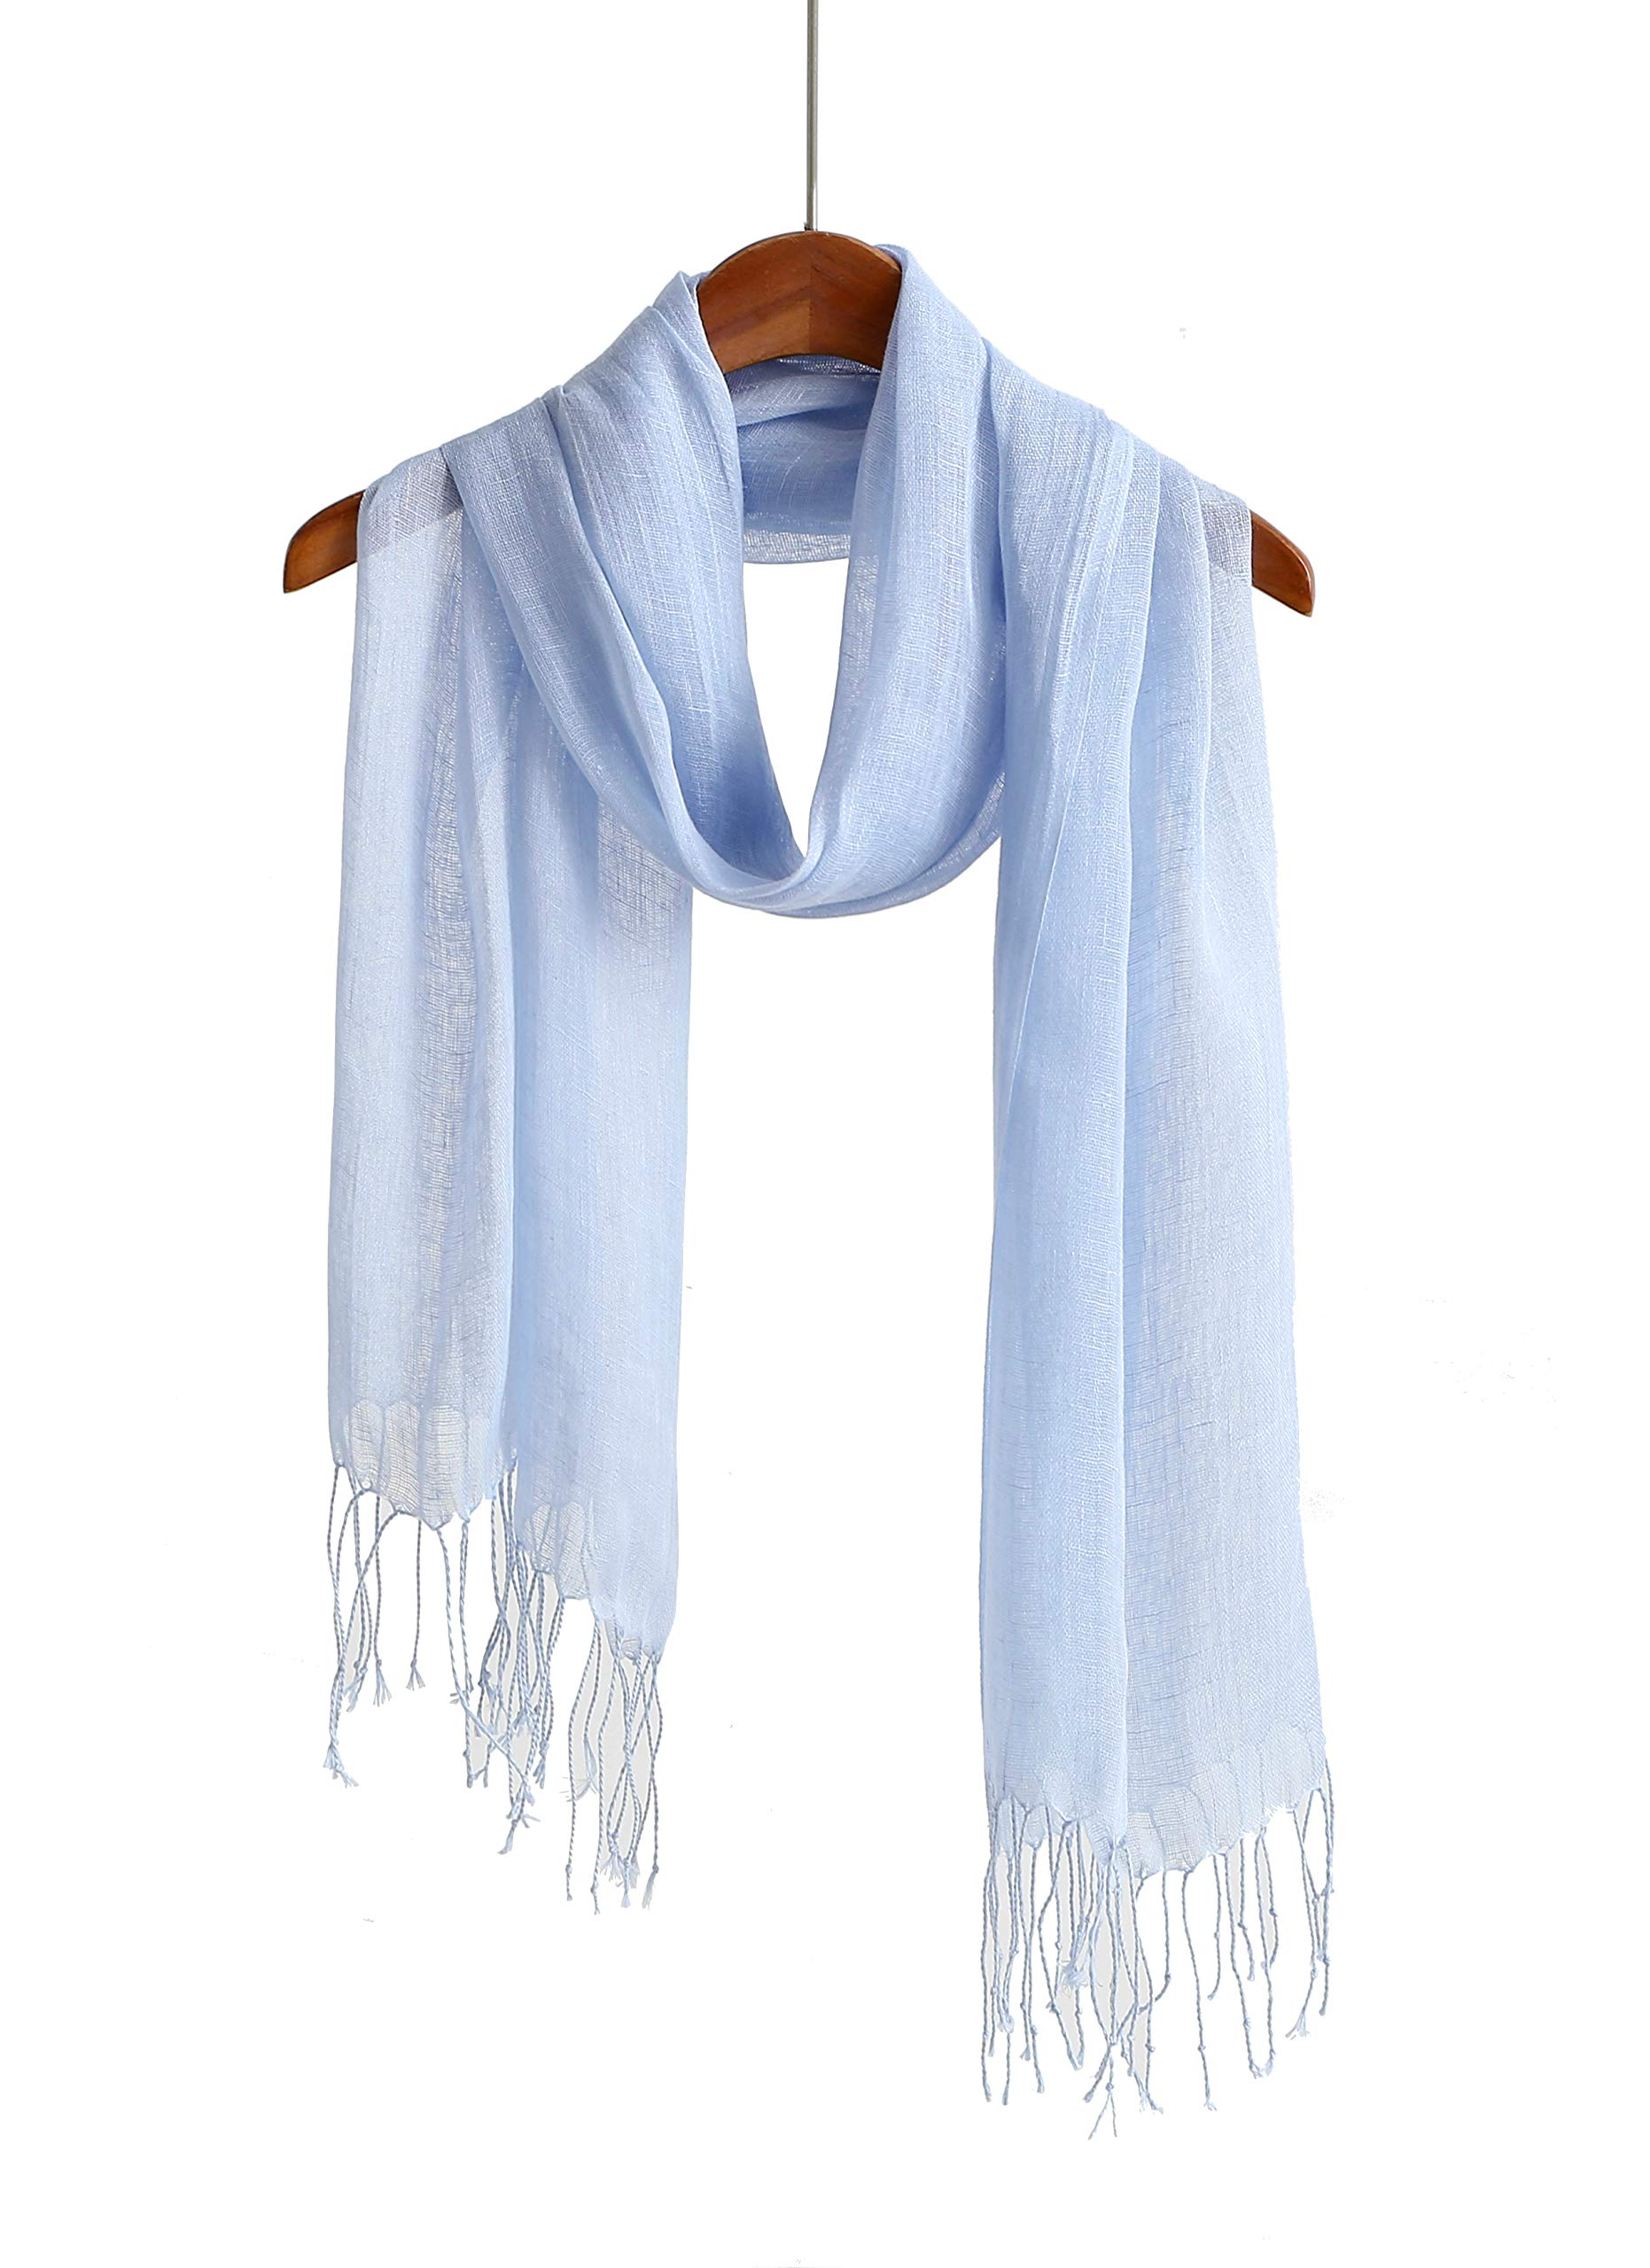 WS Natural Scarf/Shawl/Wrap Linen Feel Scarves For Men And Women. (Soft blue) by Jeelow